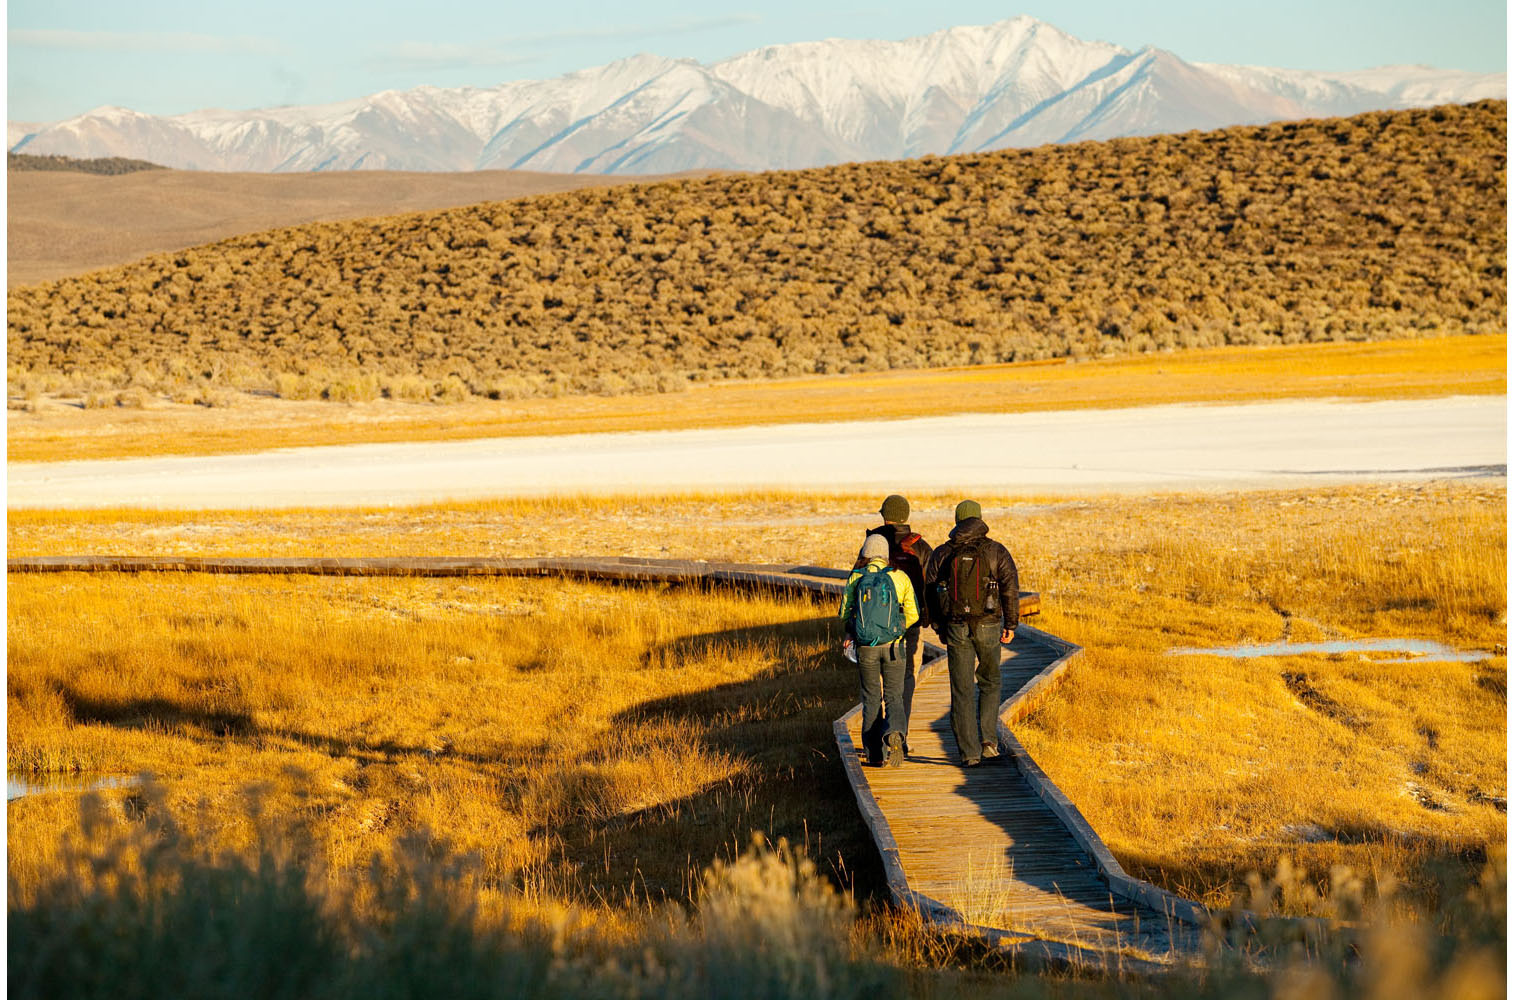 Lifestyle: Three friends walking to a natural hot springs at sunset, Owens Valley, Eastern Sierras, California